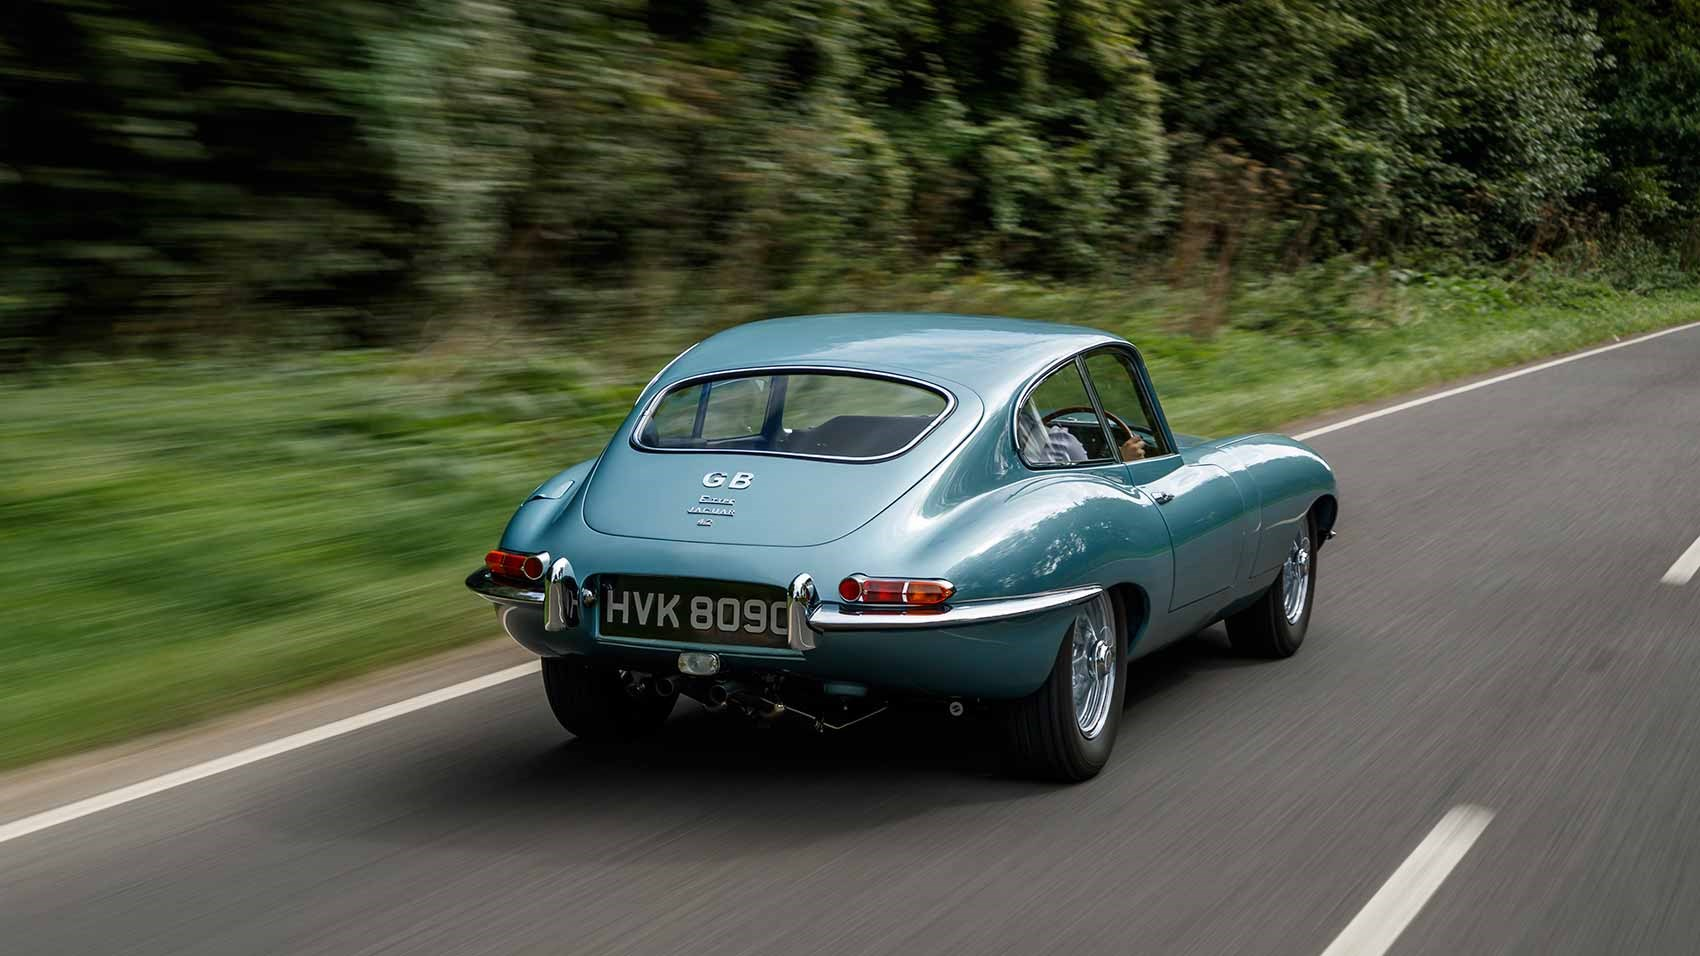 Beautiful But Pricey The Jaguar Reborn E Type Costs 295 000